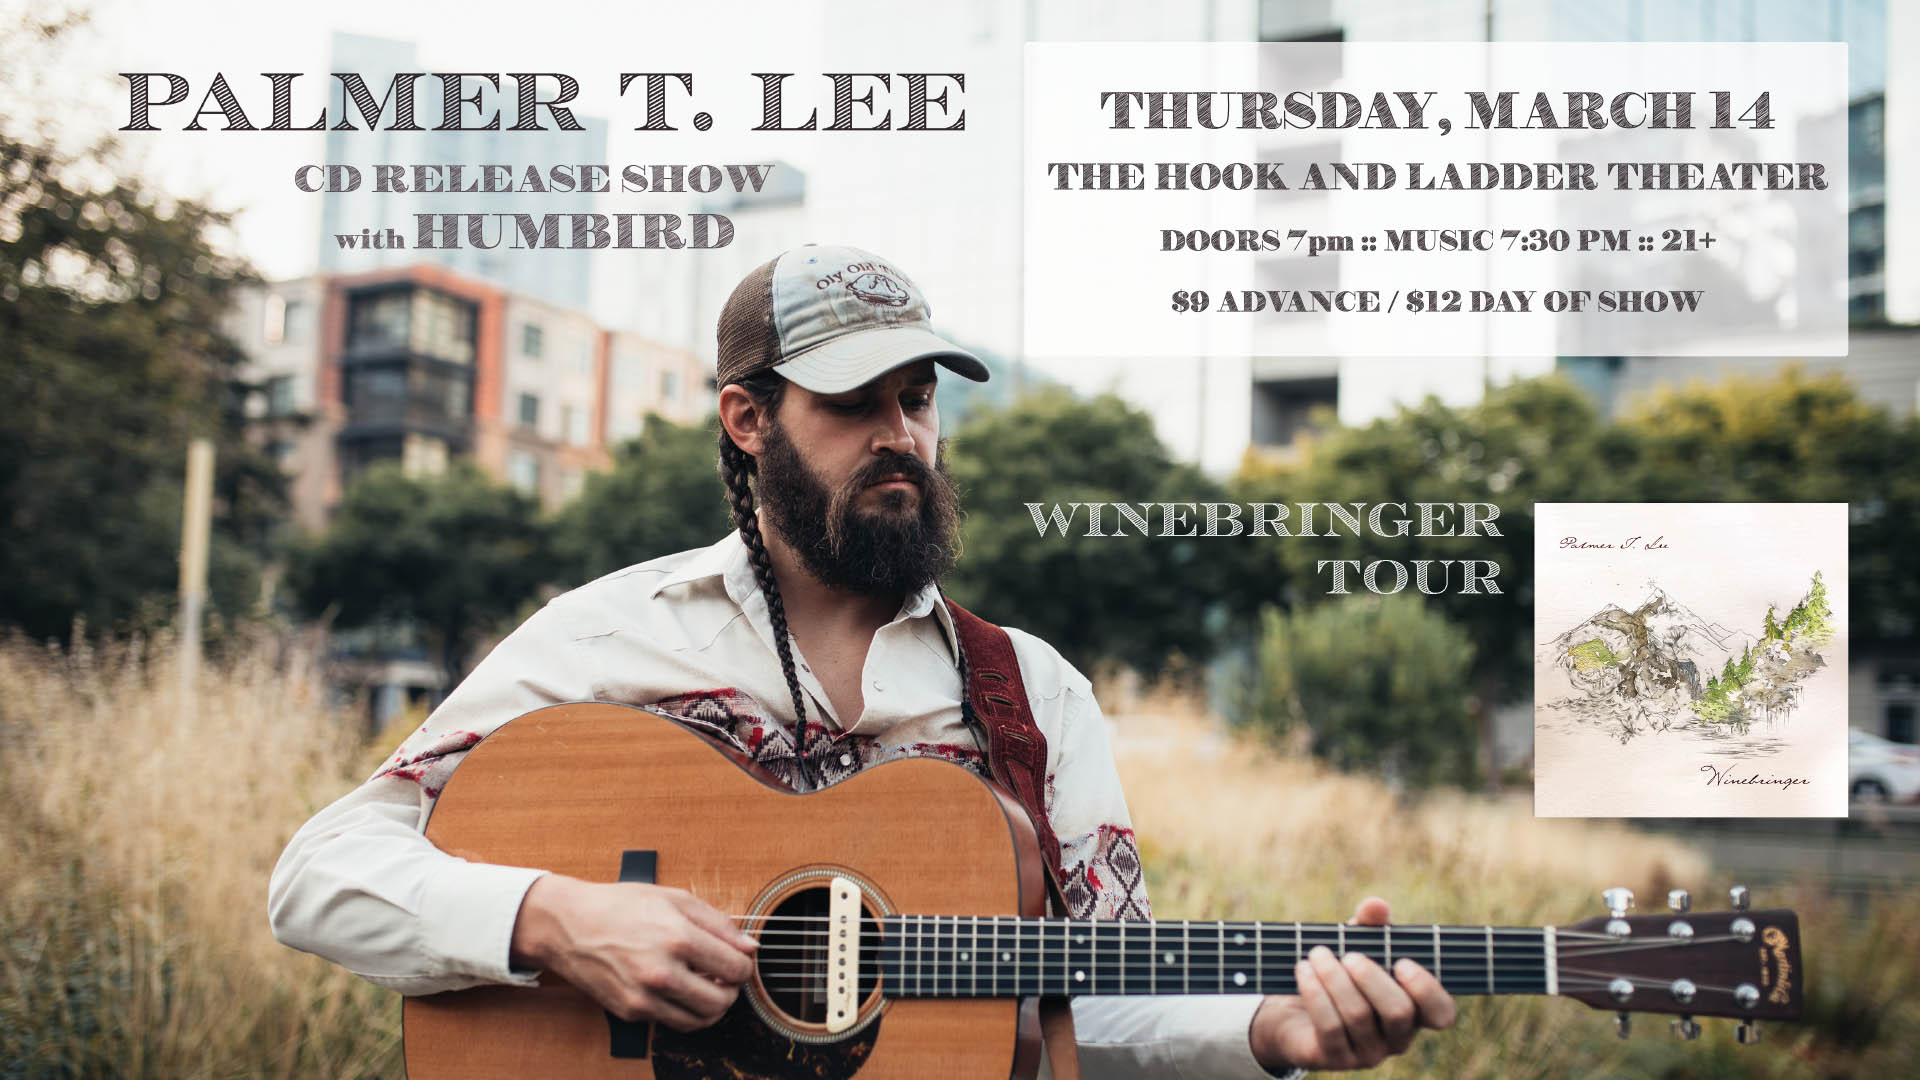 Palmer T. Lee- CD Release Show with special guest Humbird